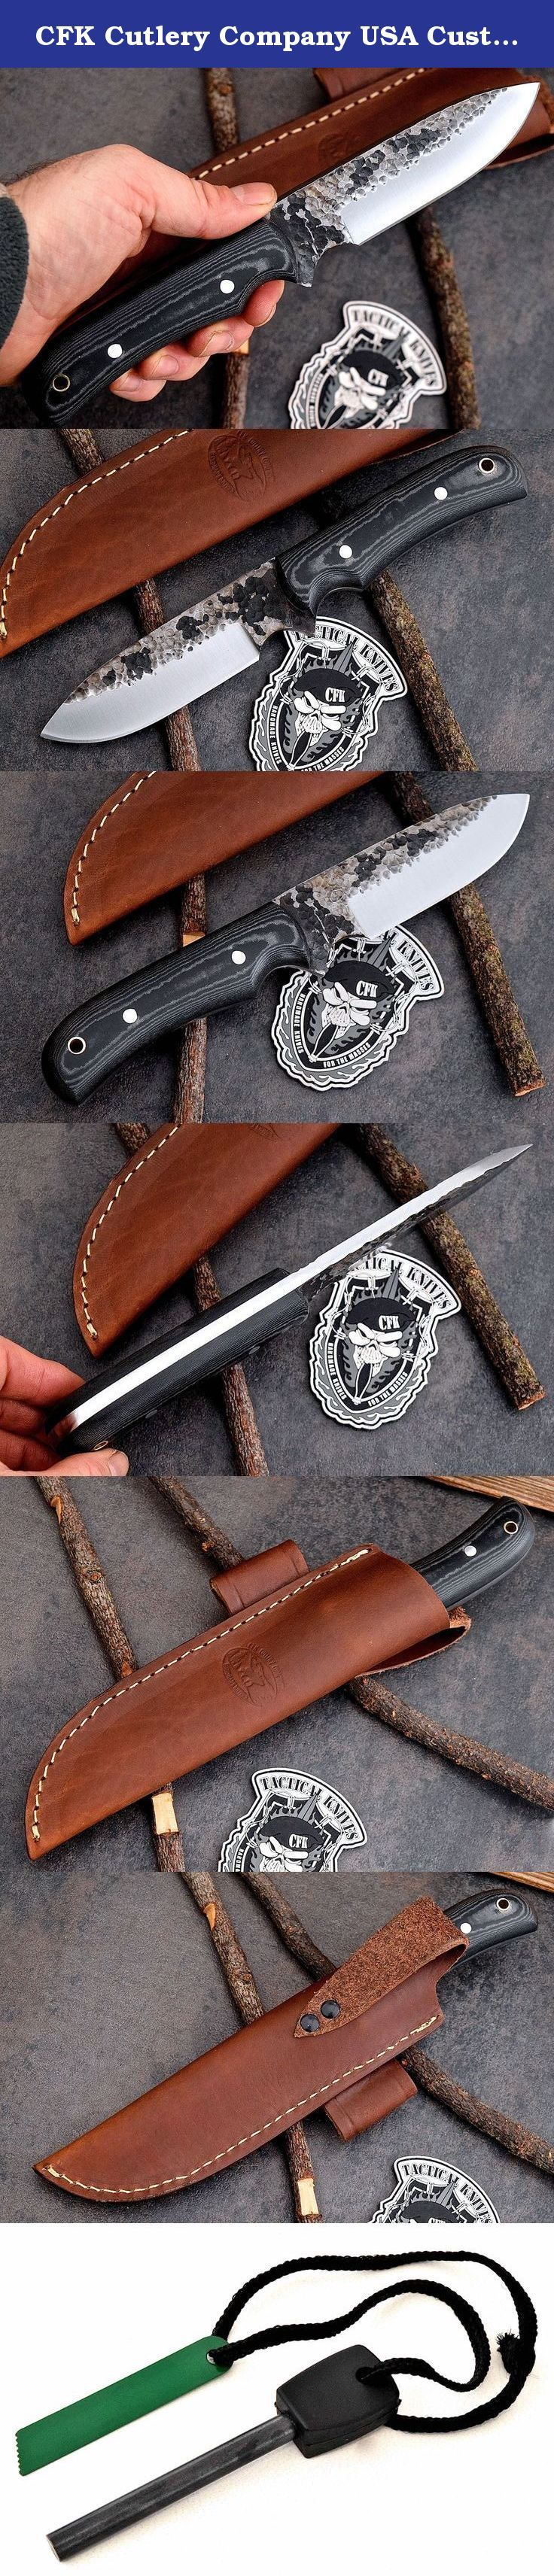 CFK Cutlery Company USA Custom Handmade Hammered D2 Tool Steel Micarta BUSHCRAFT-SURVIVAL Skinning Hunting Knife with Leather Sheath & Fire Starter Set CFK15. This knife is beautiful and functional. The knife has a full .25 inch thick blade that is tempered to 59HRC. The blade is tough and sharp! The knife is great for hunting, skinning, camping, bushcraft, and game-processing uses. The knife has a high quality handcrafted leather belt sheath and the knife comes with a lifetime…